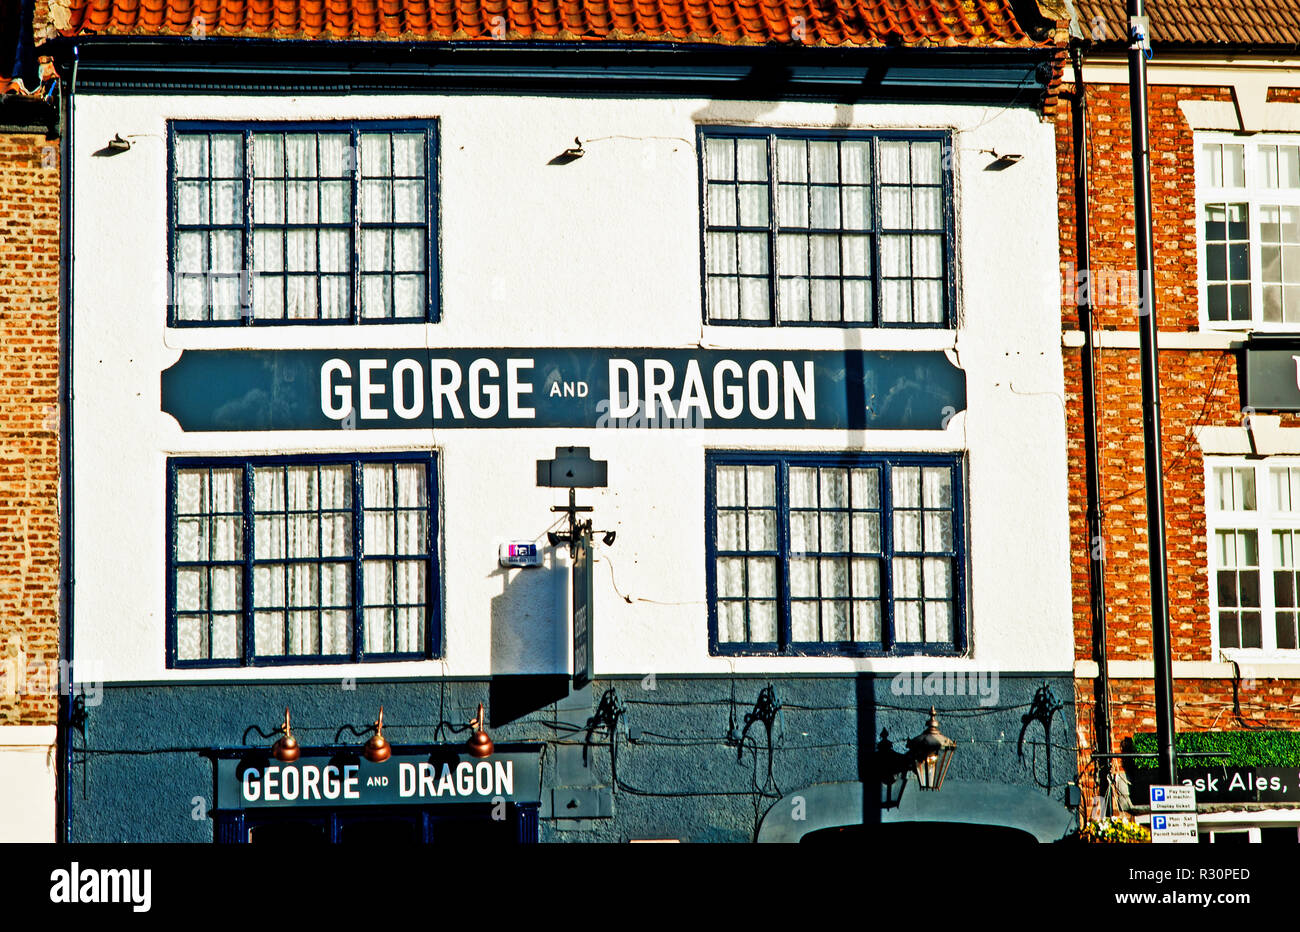 The George and Dragon, Yarm on Tees, North East England - Stock Image